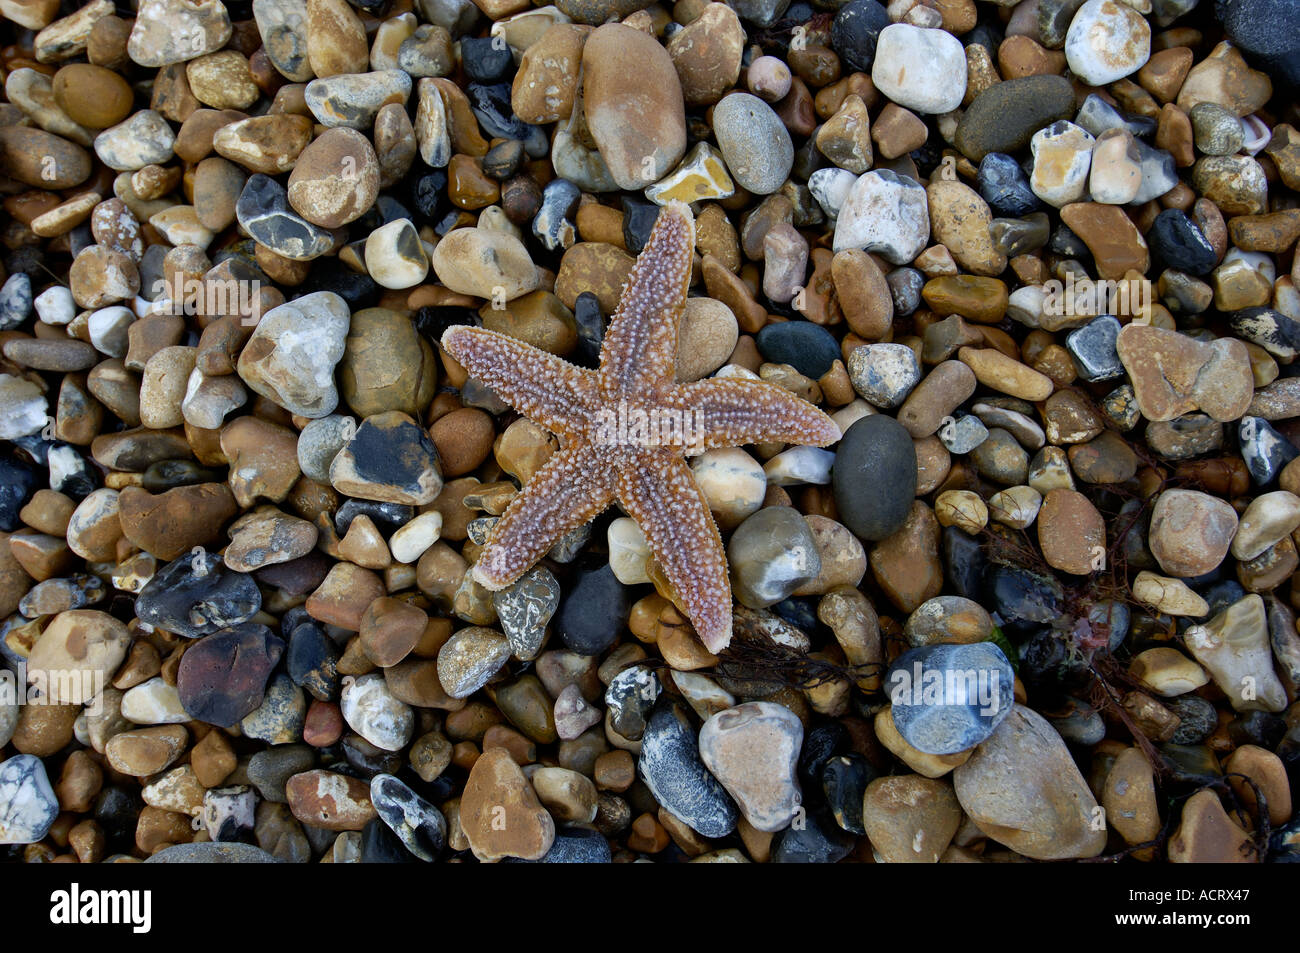 Starfish Brighton West Sussex England - Stock Image